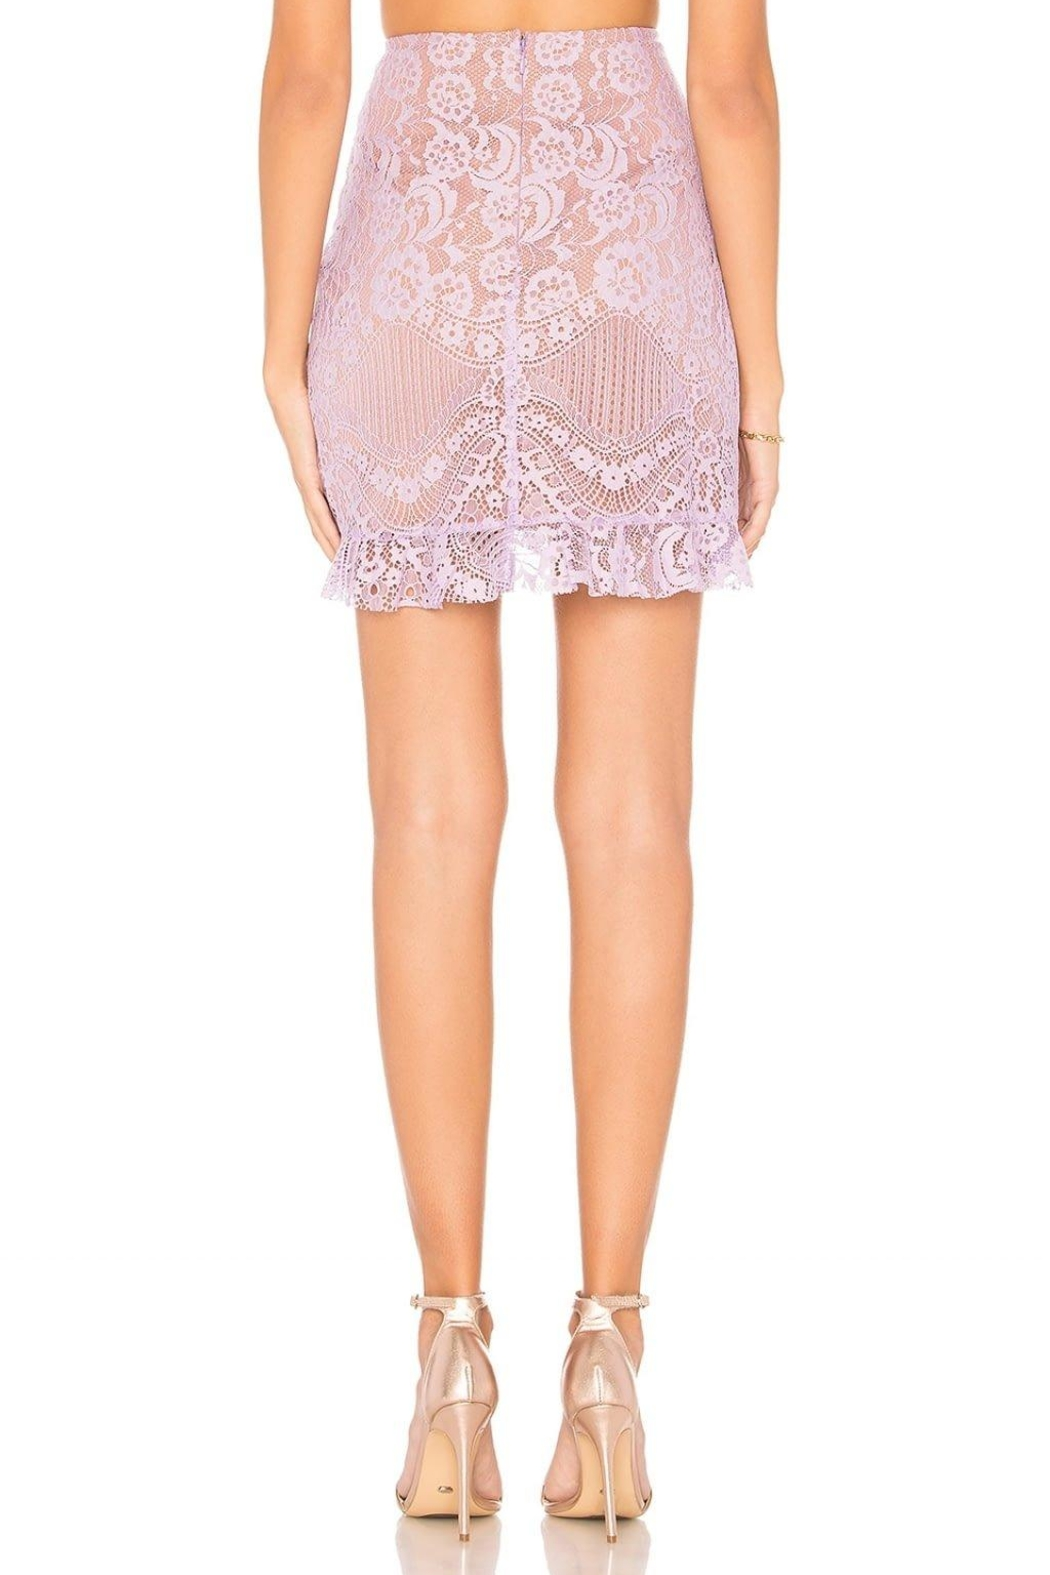 FOR LOVE & LEMONS Lace Mini Skirt - Back Cropped Image